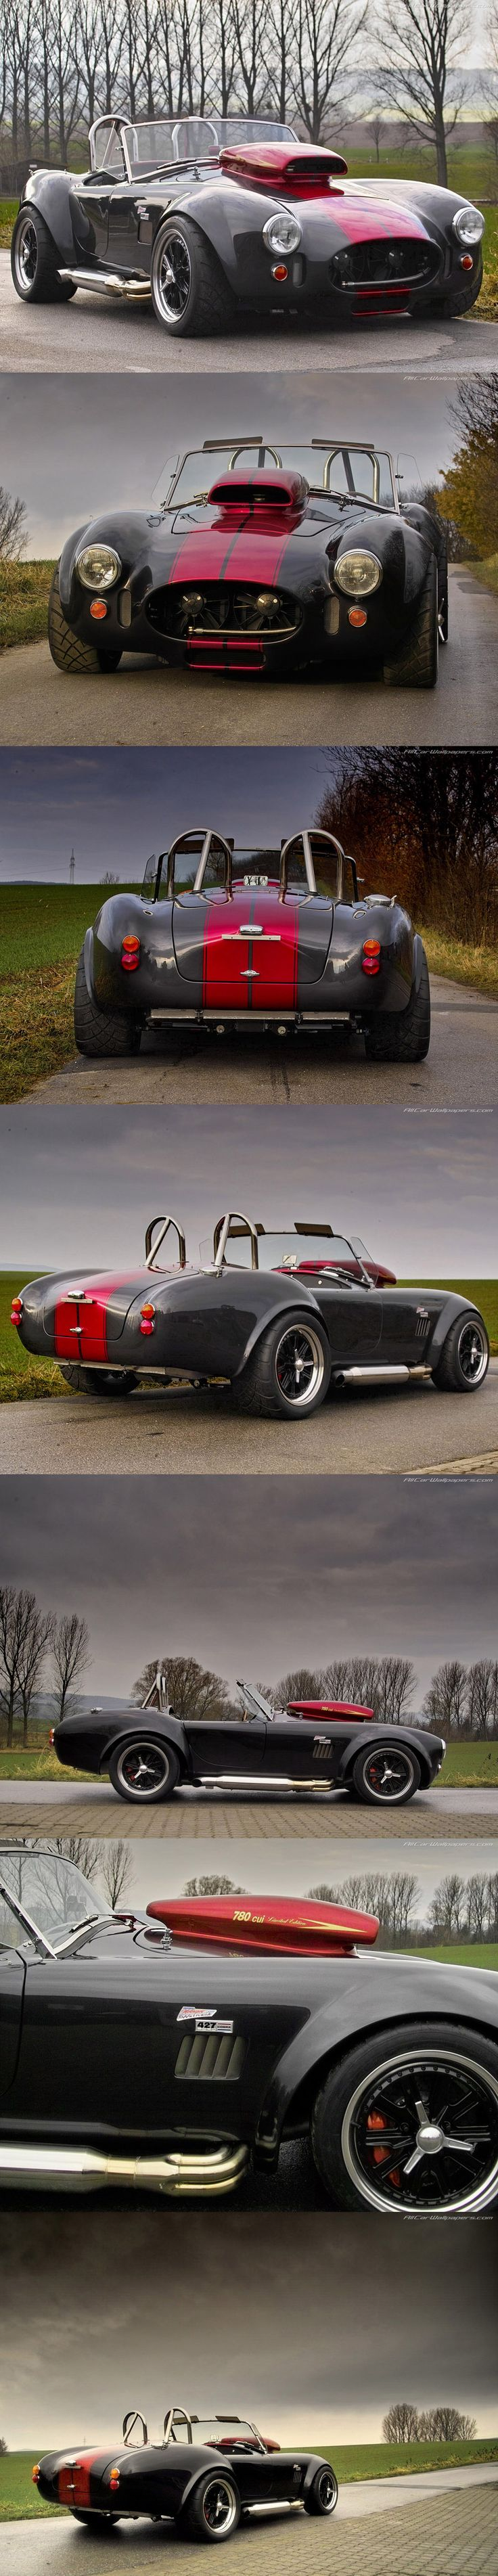 Weineck Cobra 780CUI Limited Edition, 0-200km/h in 4.9 seconds!!! I want just one hour in this car.